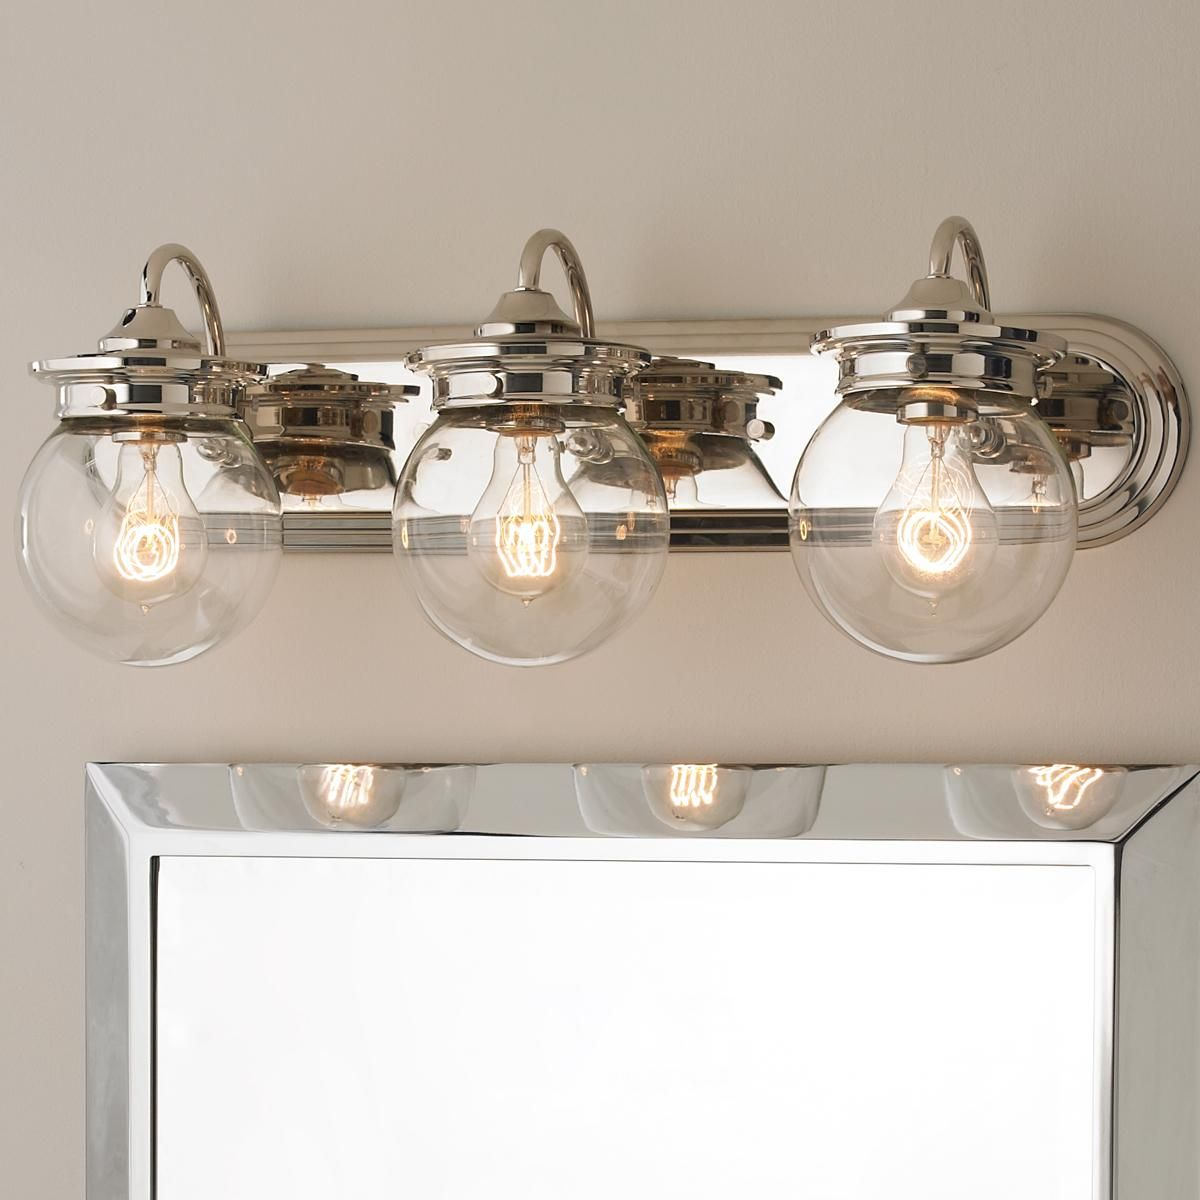 Vanity Light Glass Globes : Traditional Clear Glass Globe Bath Light - 3 Light Bath light and Traditional baths